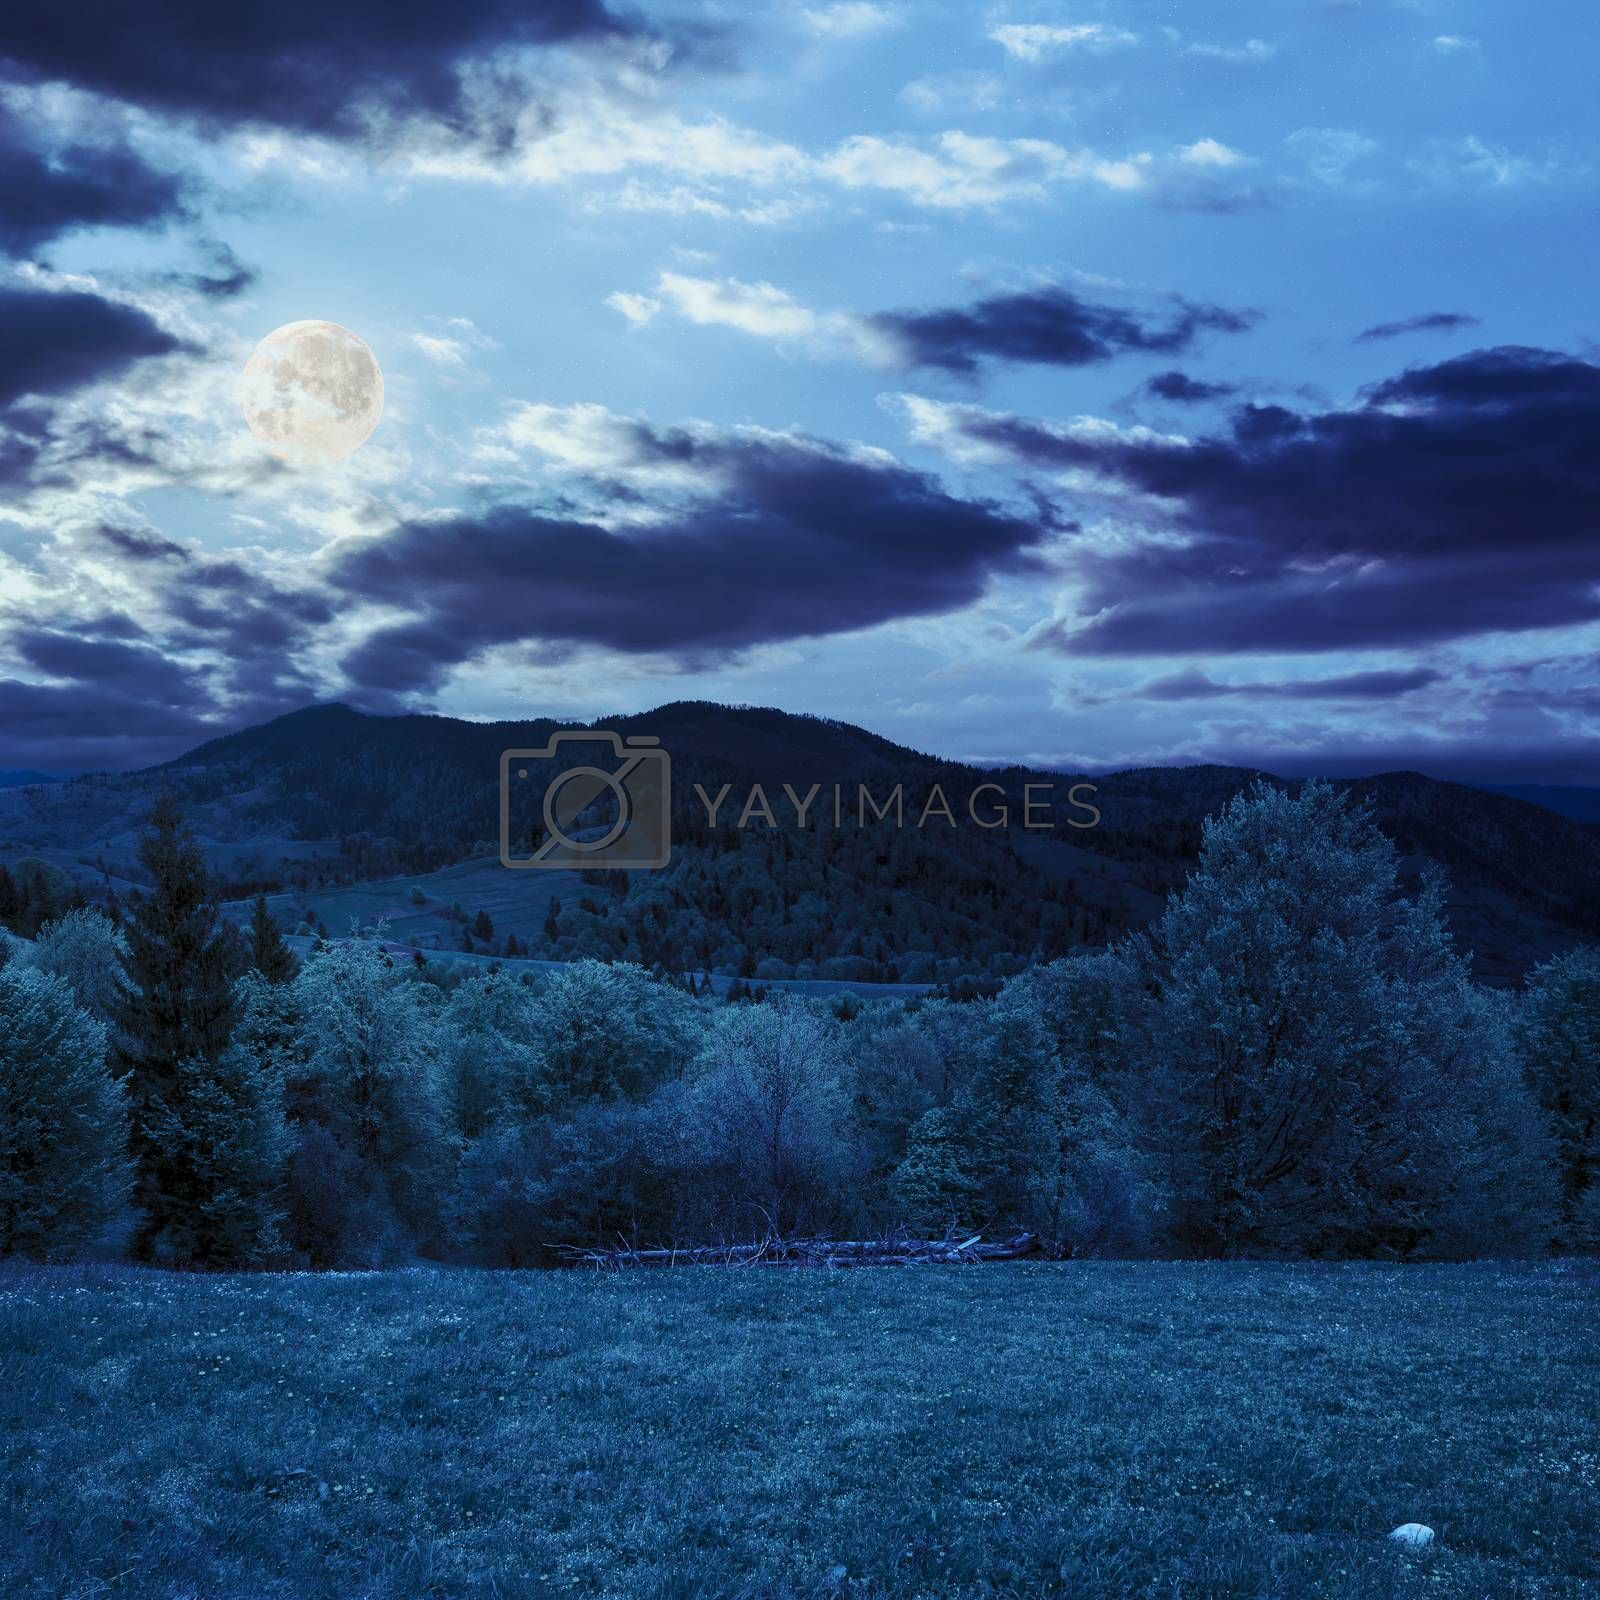 trees near valley in mountains at night by Pellinni